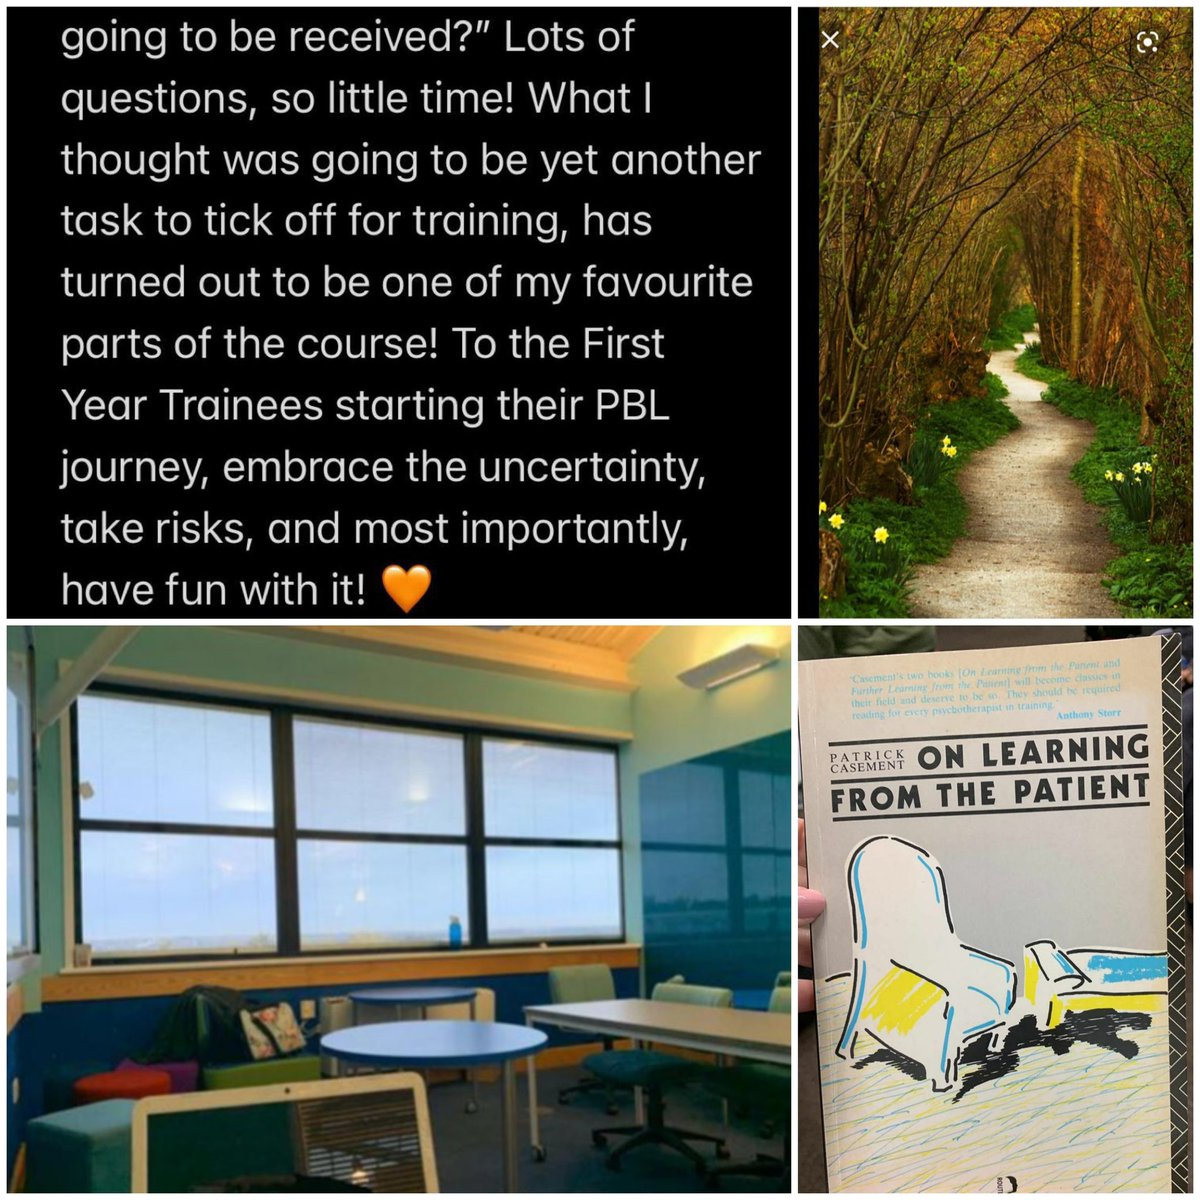 Hey, Cohort 19 here! We are getting involved in #ThrowbackThursday to share some of our memories from this time last year which marked our PBL formative presentations 🤗 1/4